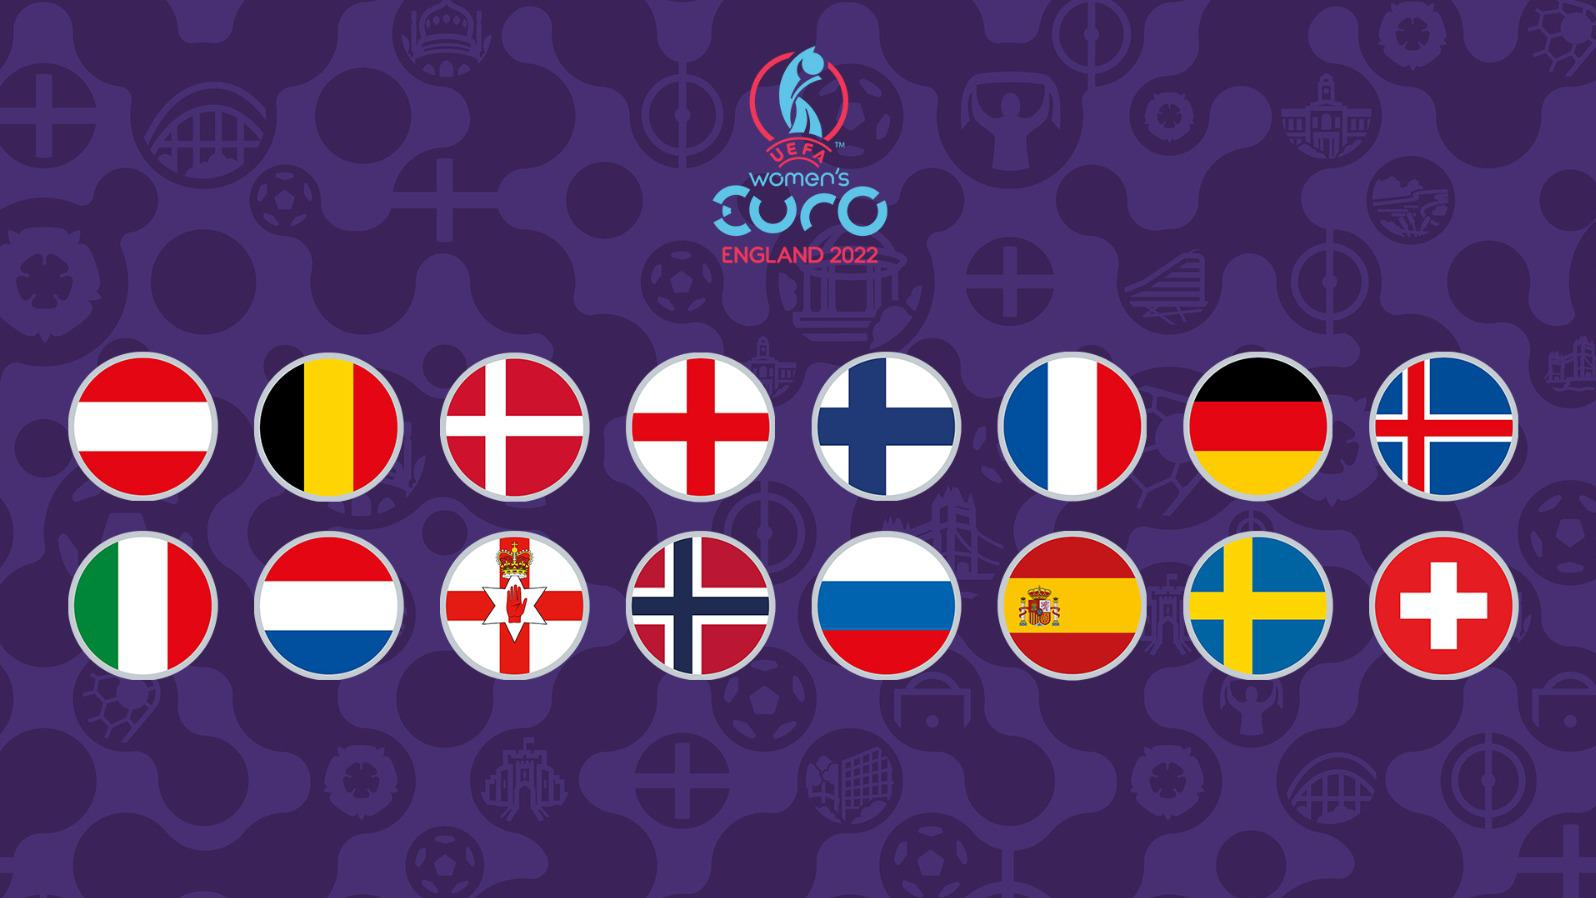 Who has qualified for Women's EURO?